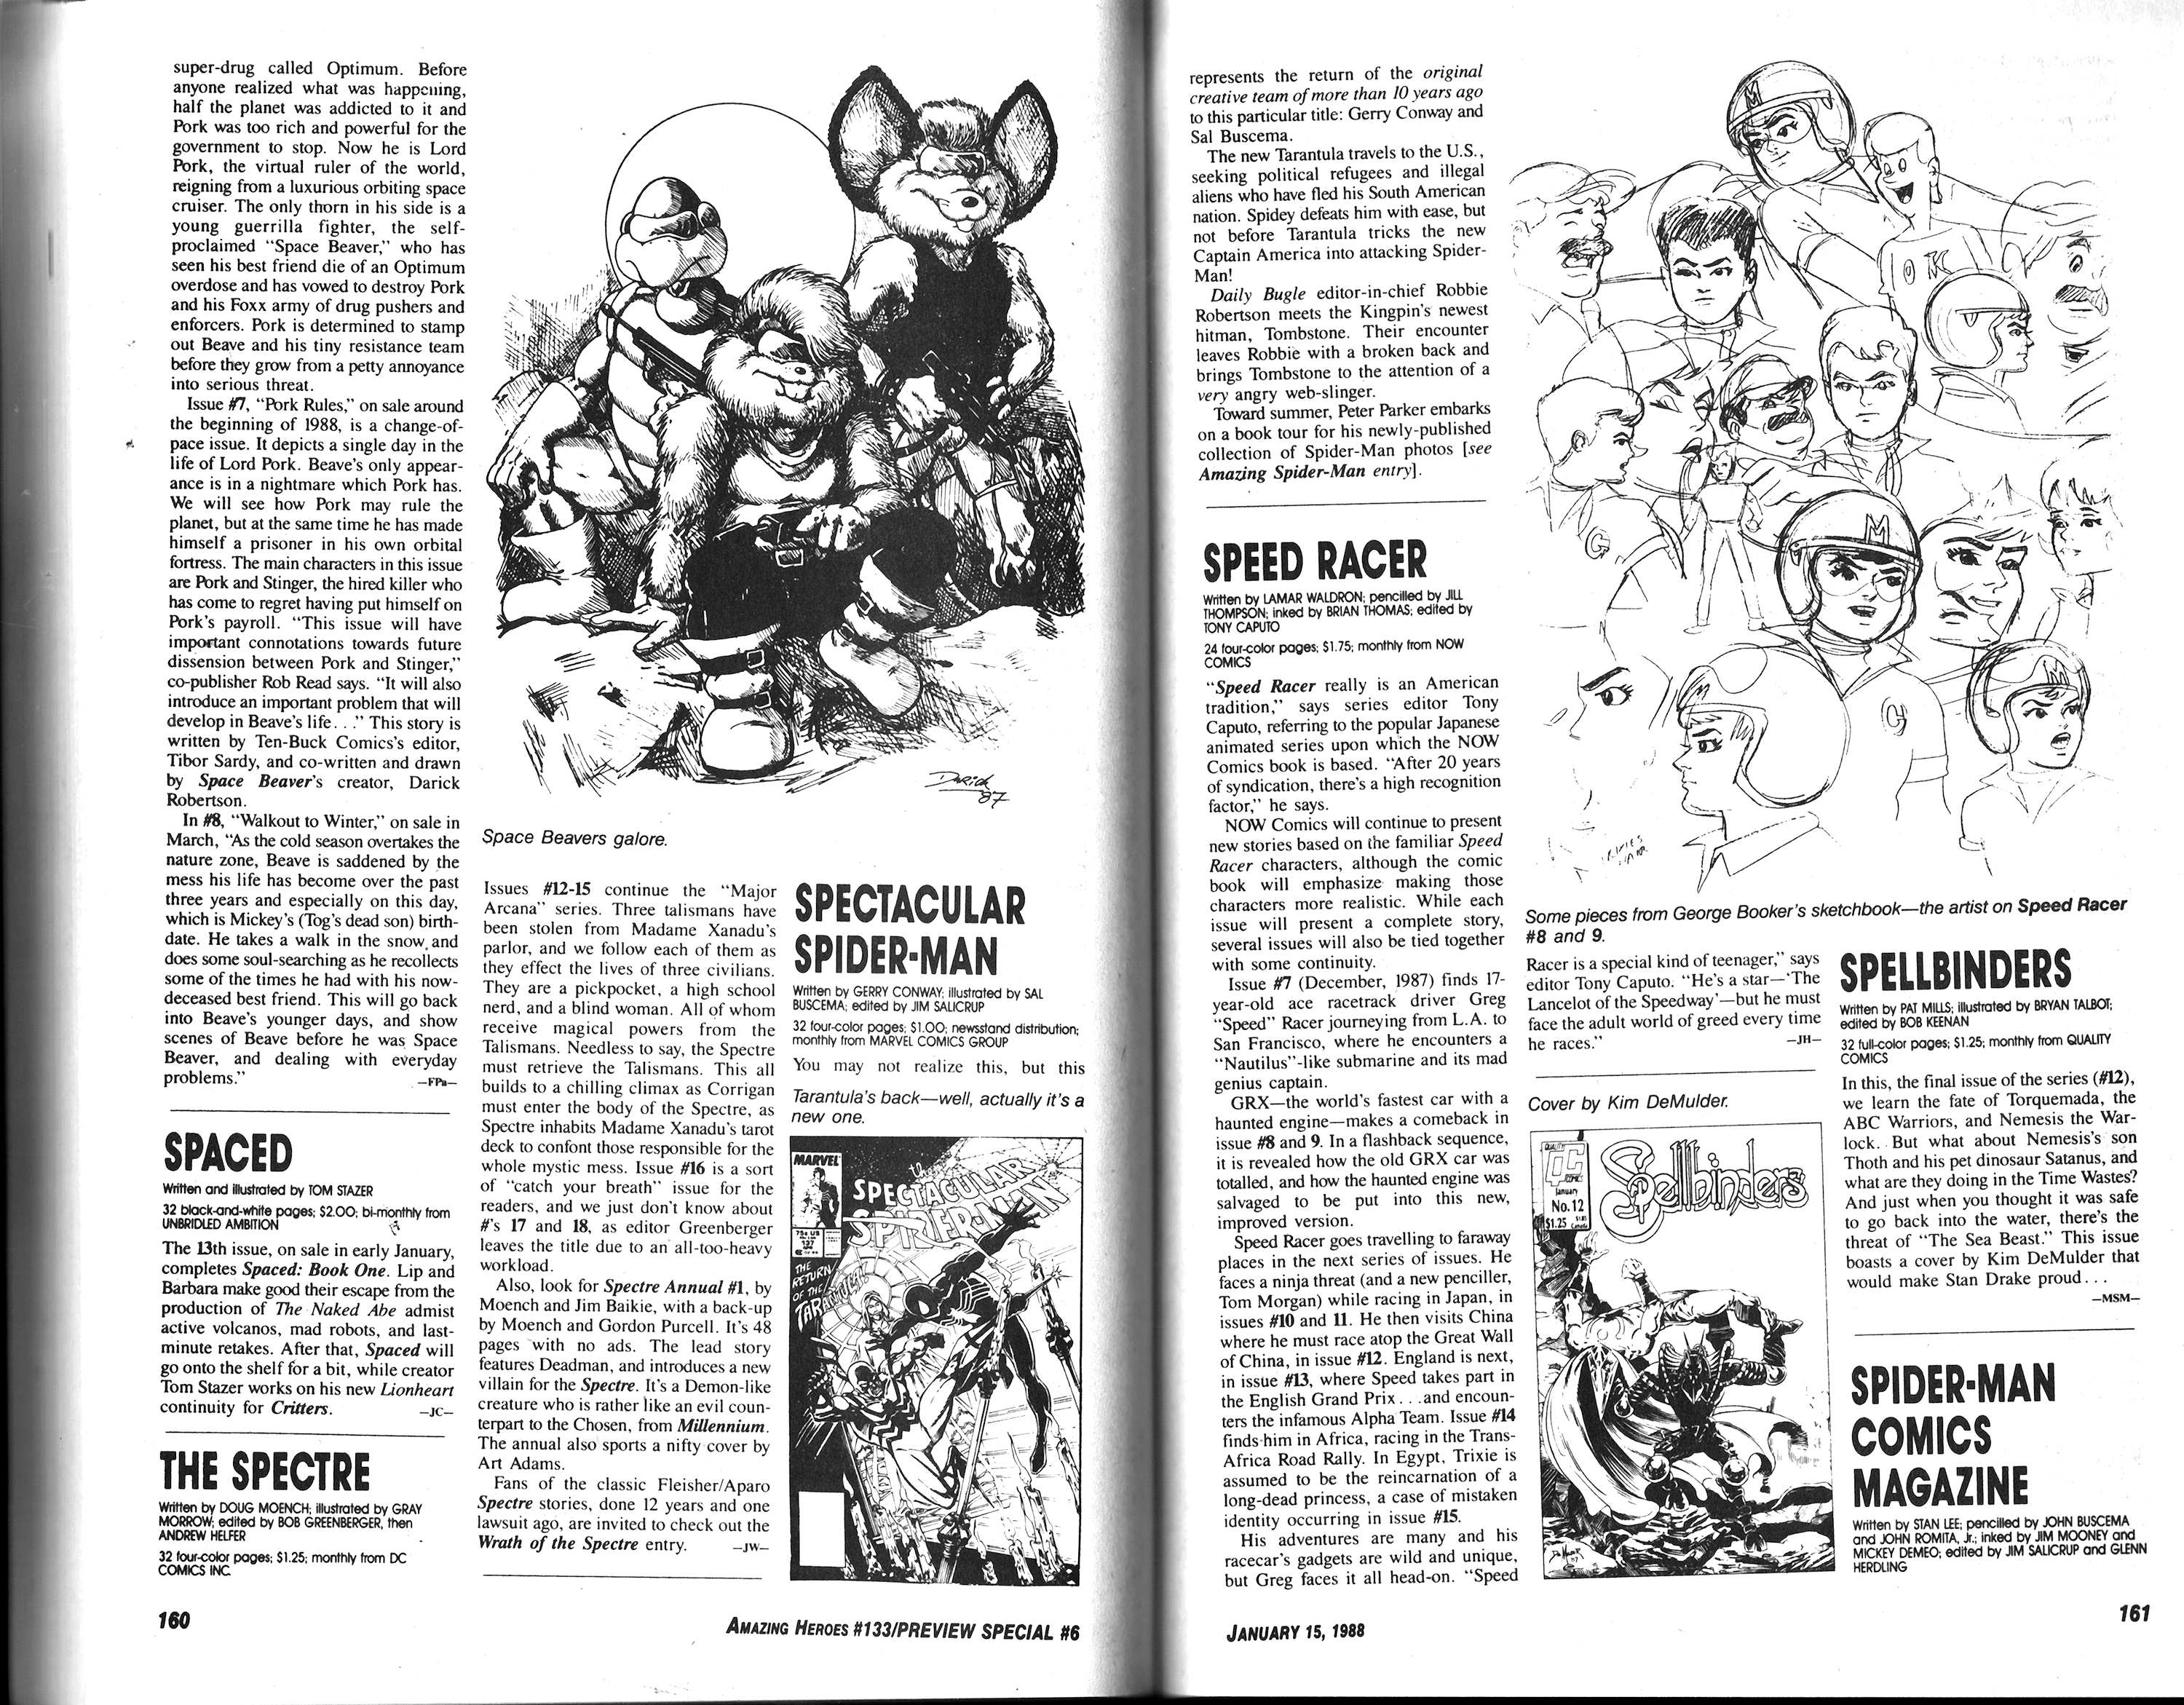 Read online Amazing Heroes comic -  Issue #133 - 82